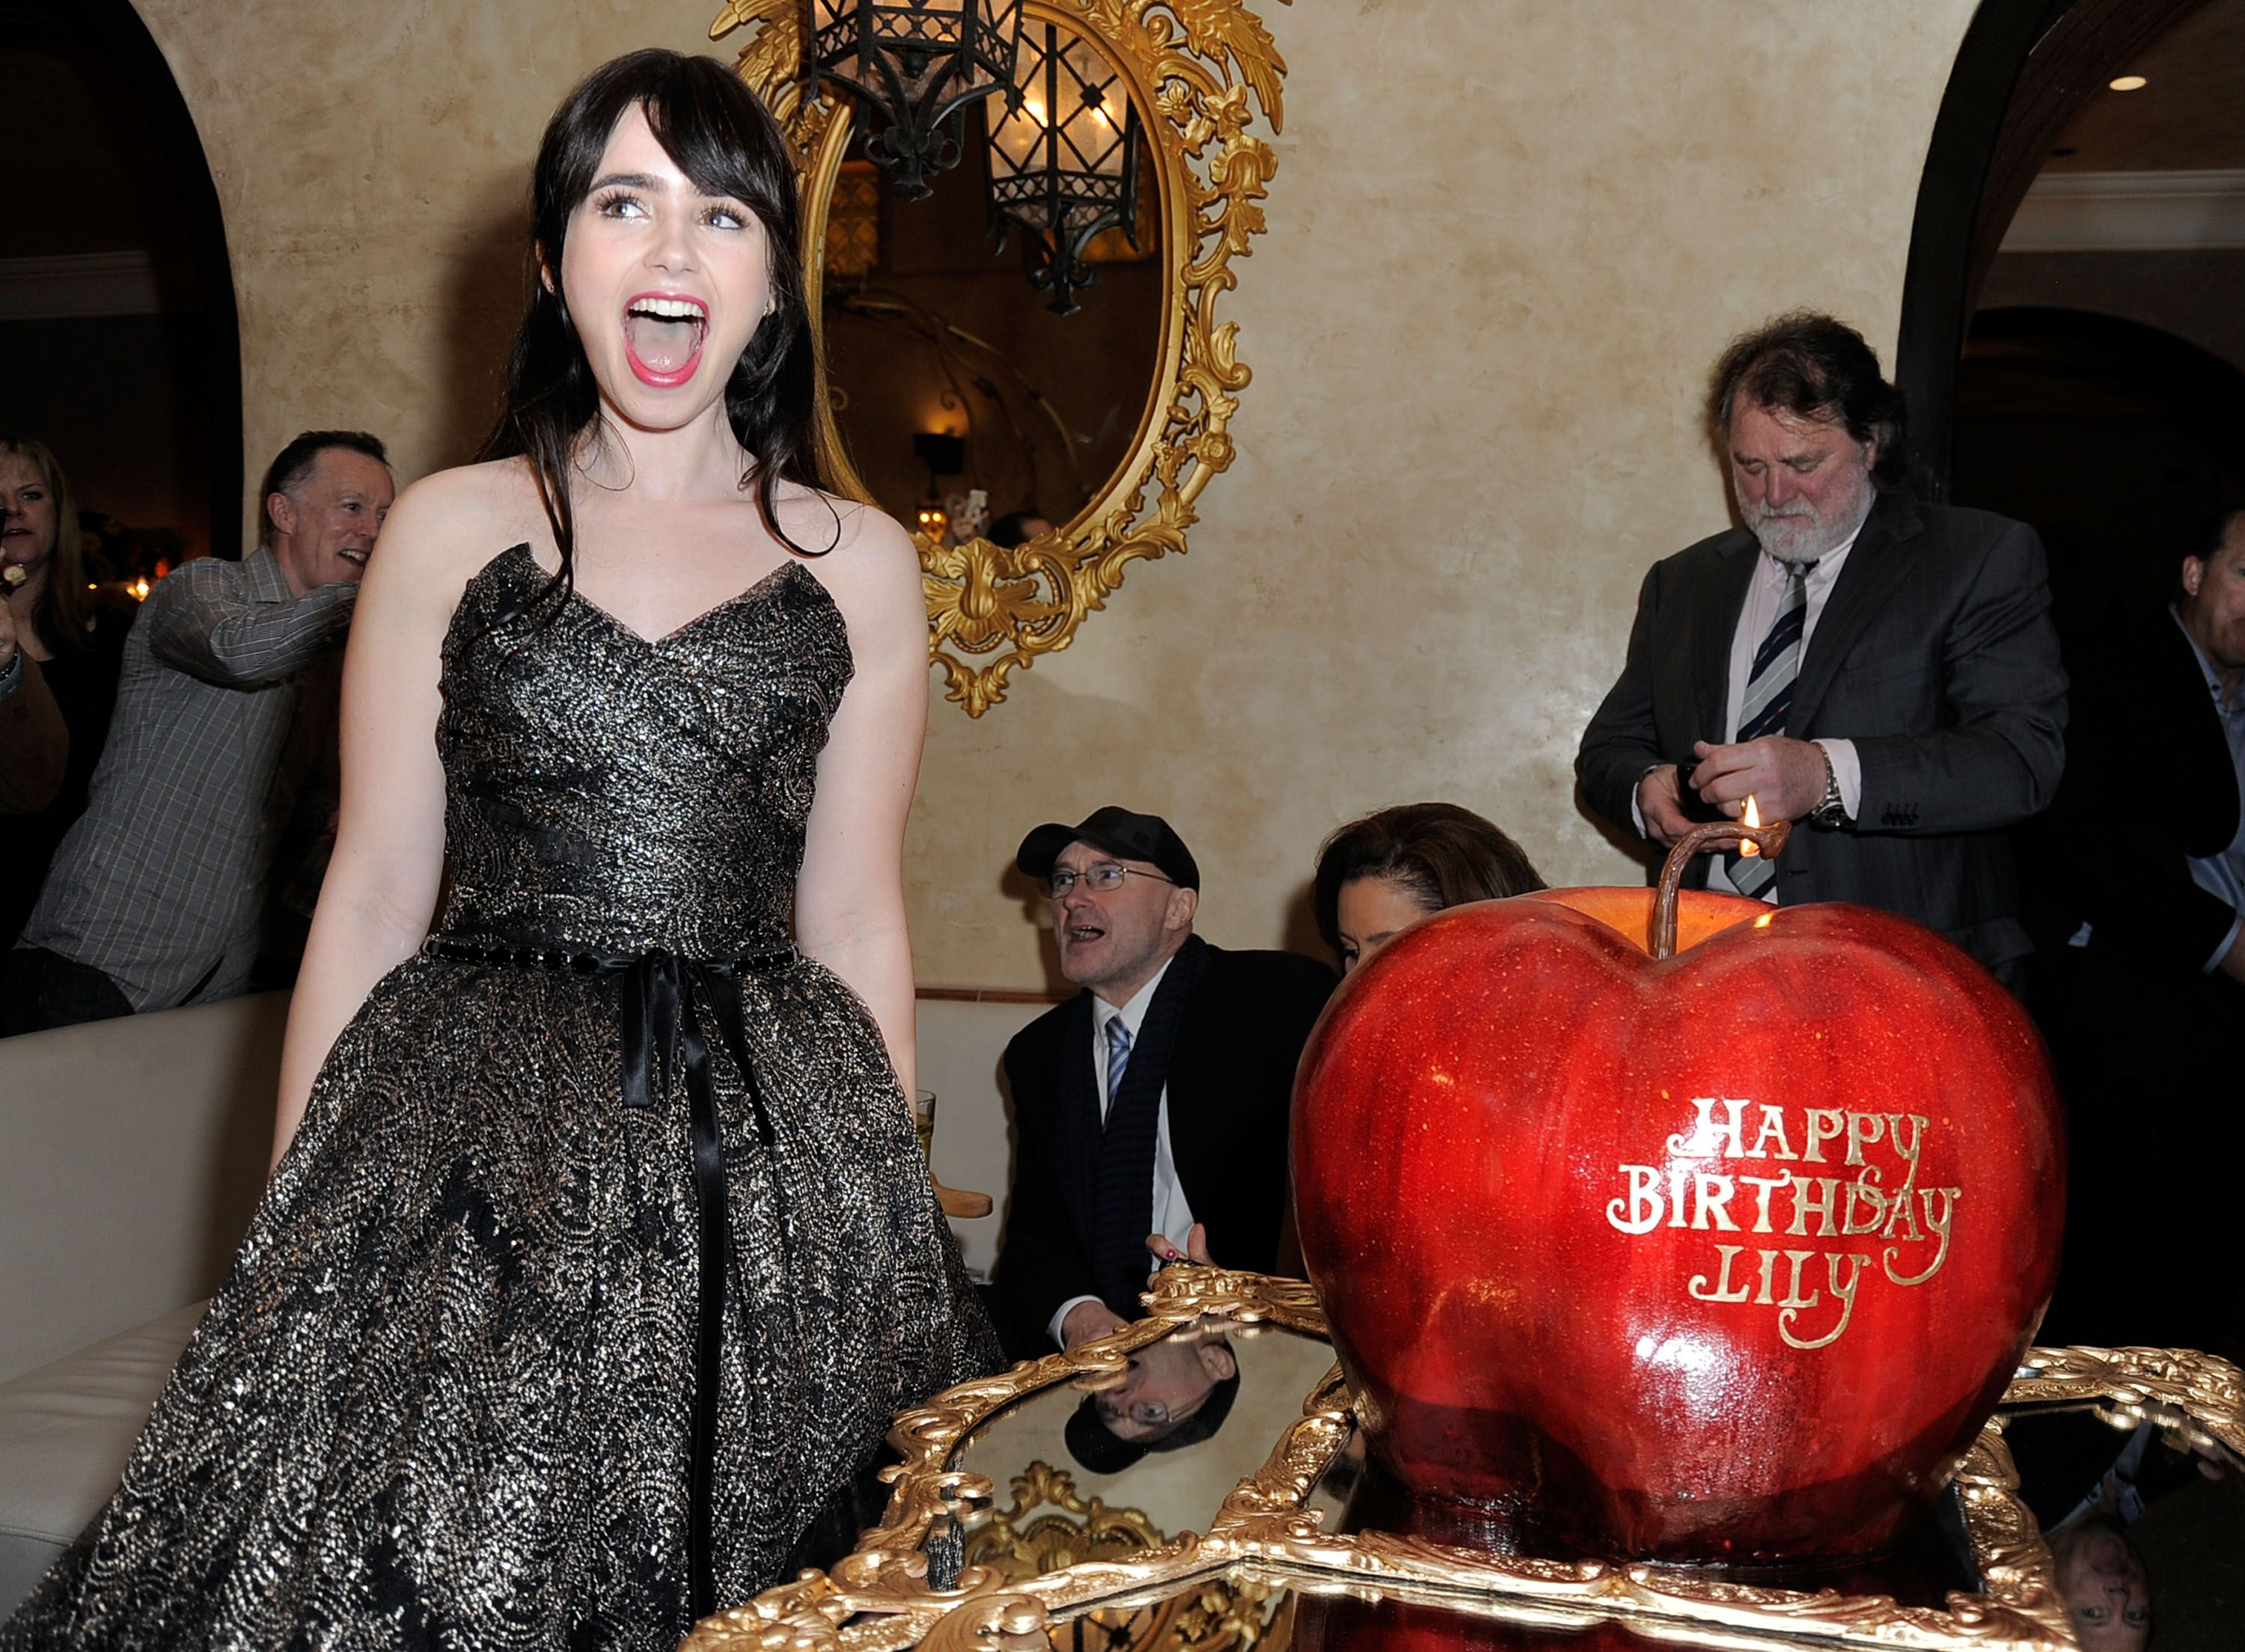 Lily Collins got a surprise 23rd Birthday cake at the LA premiere of